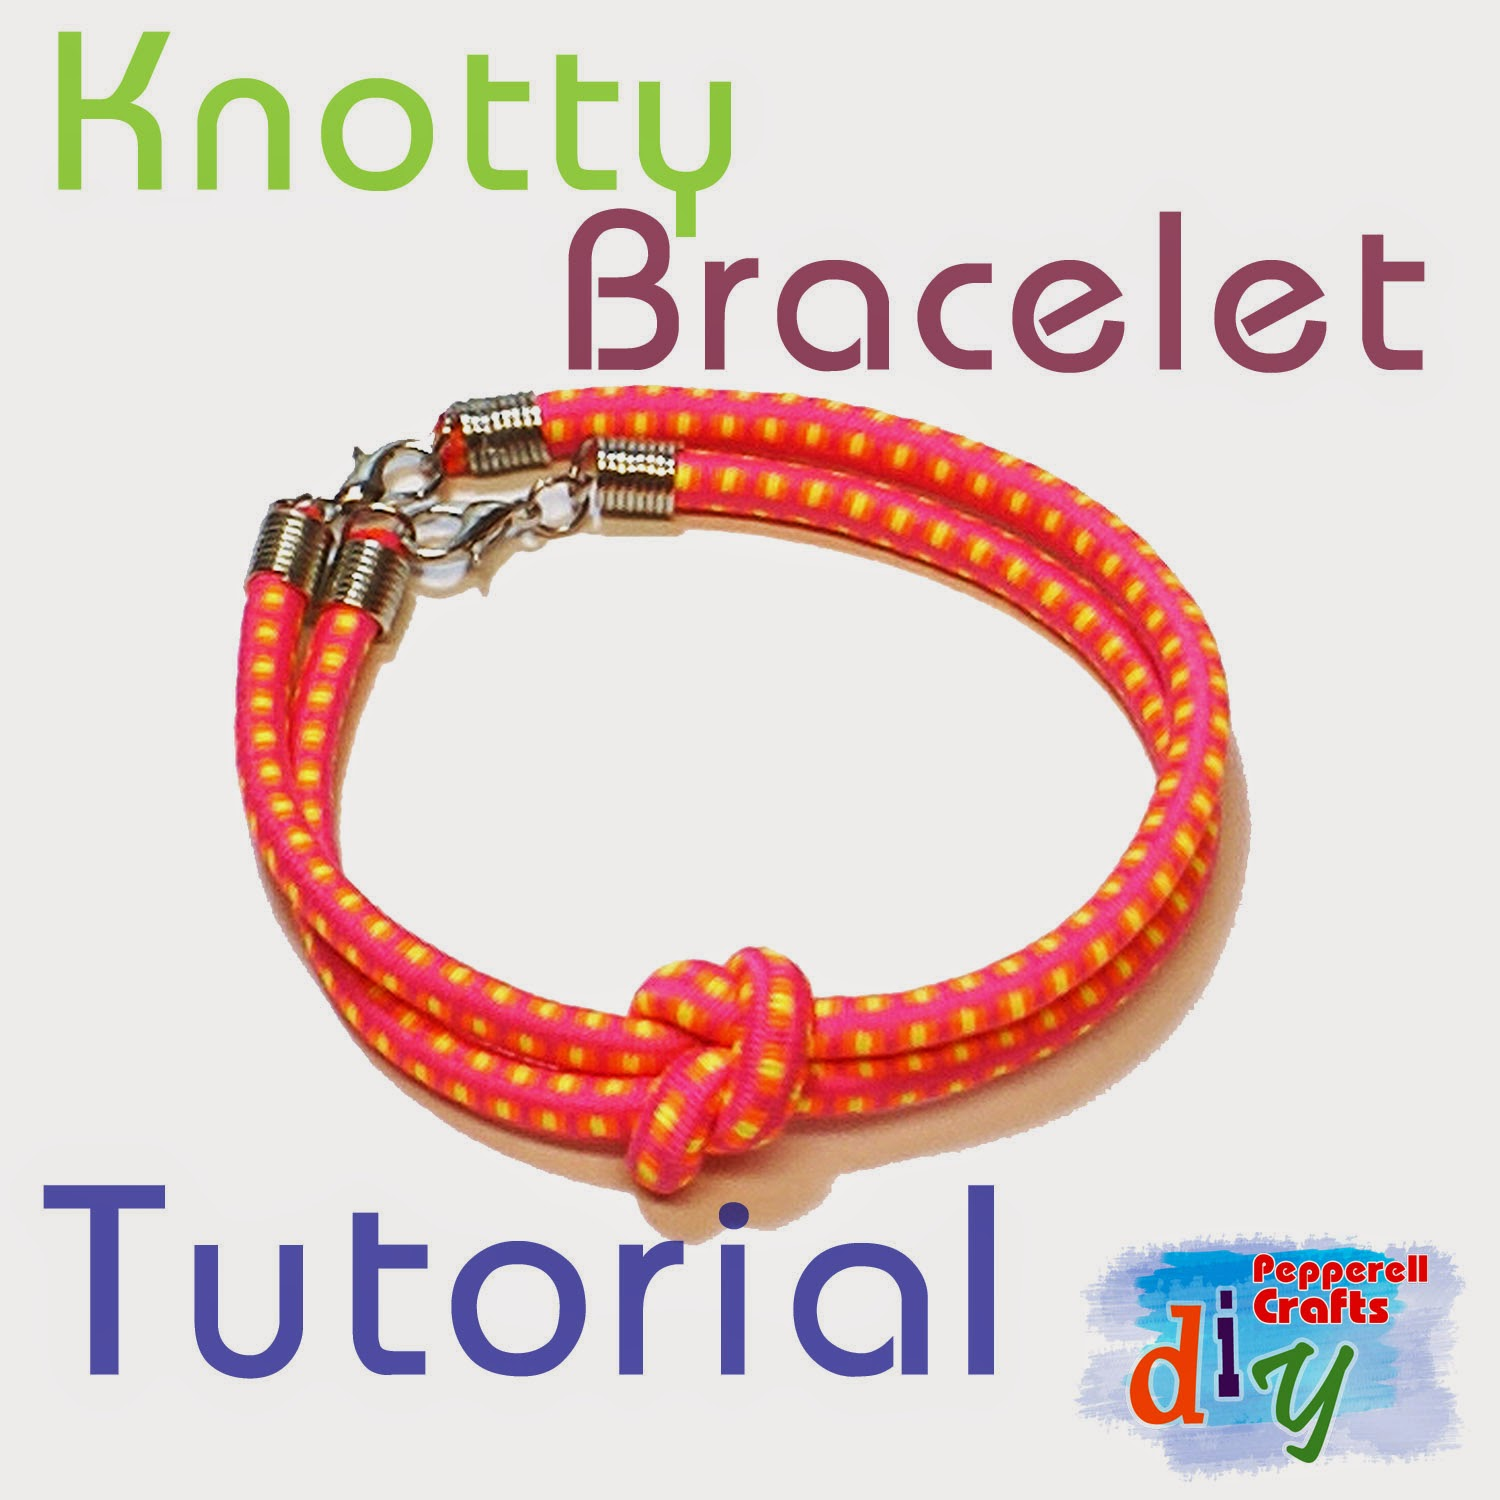 Knotty Bracelet Tutorial from Pepperell Braiding Company